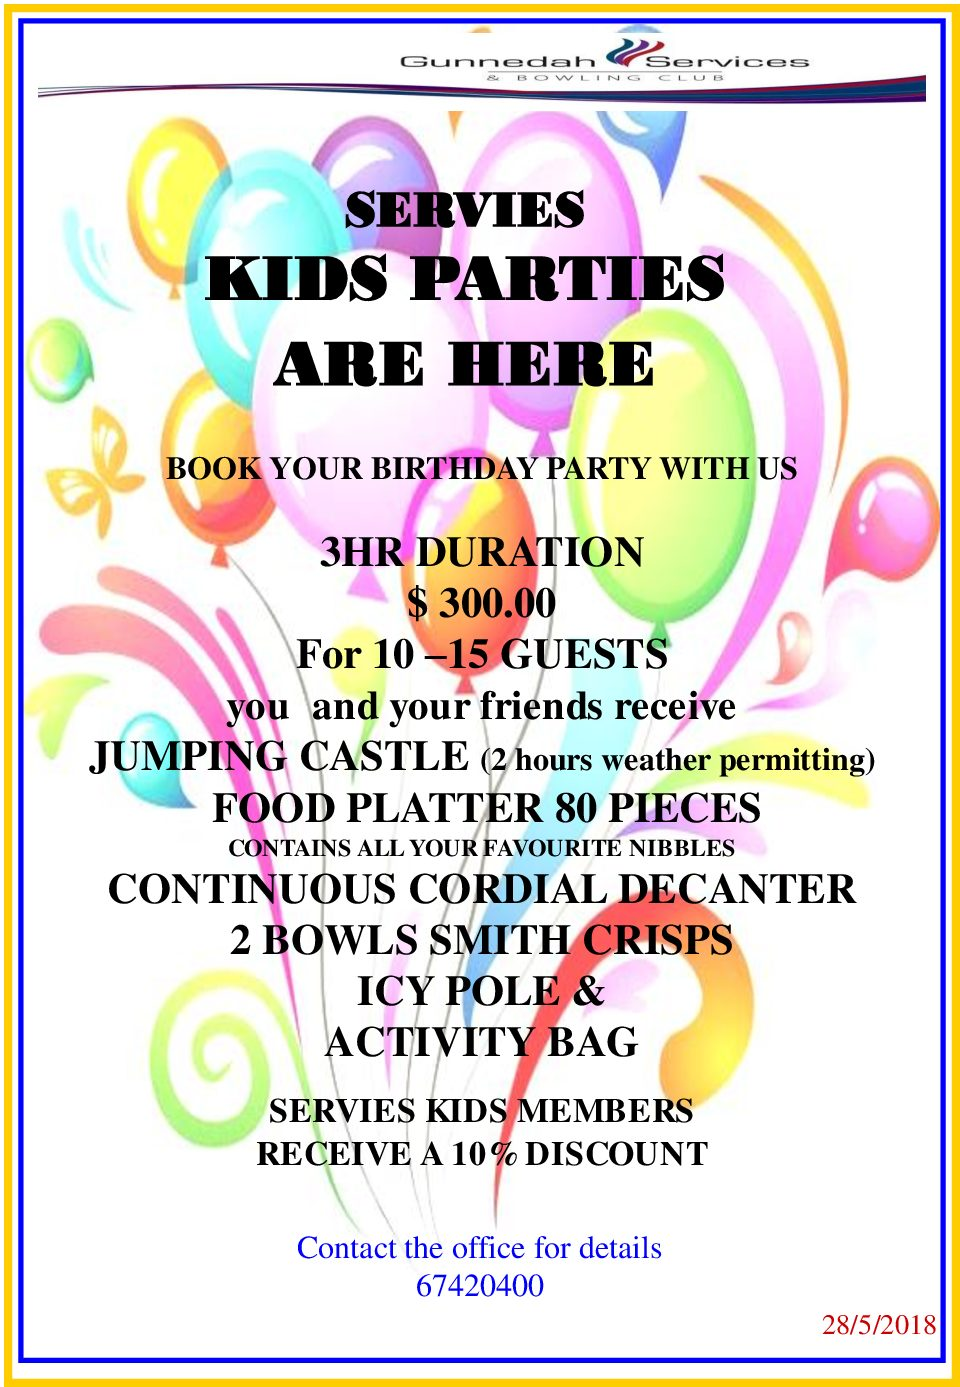 Introducing Servie's Kids Parties!